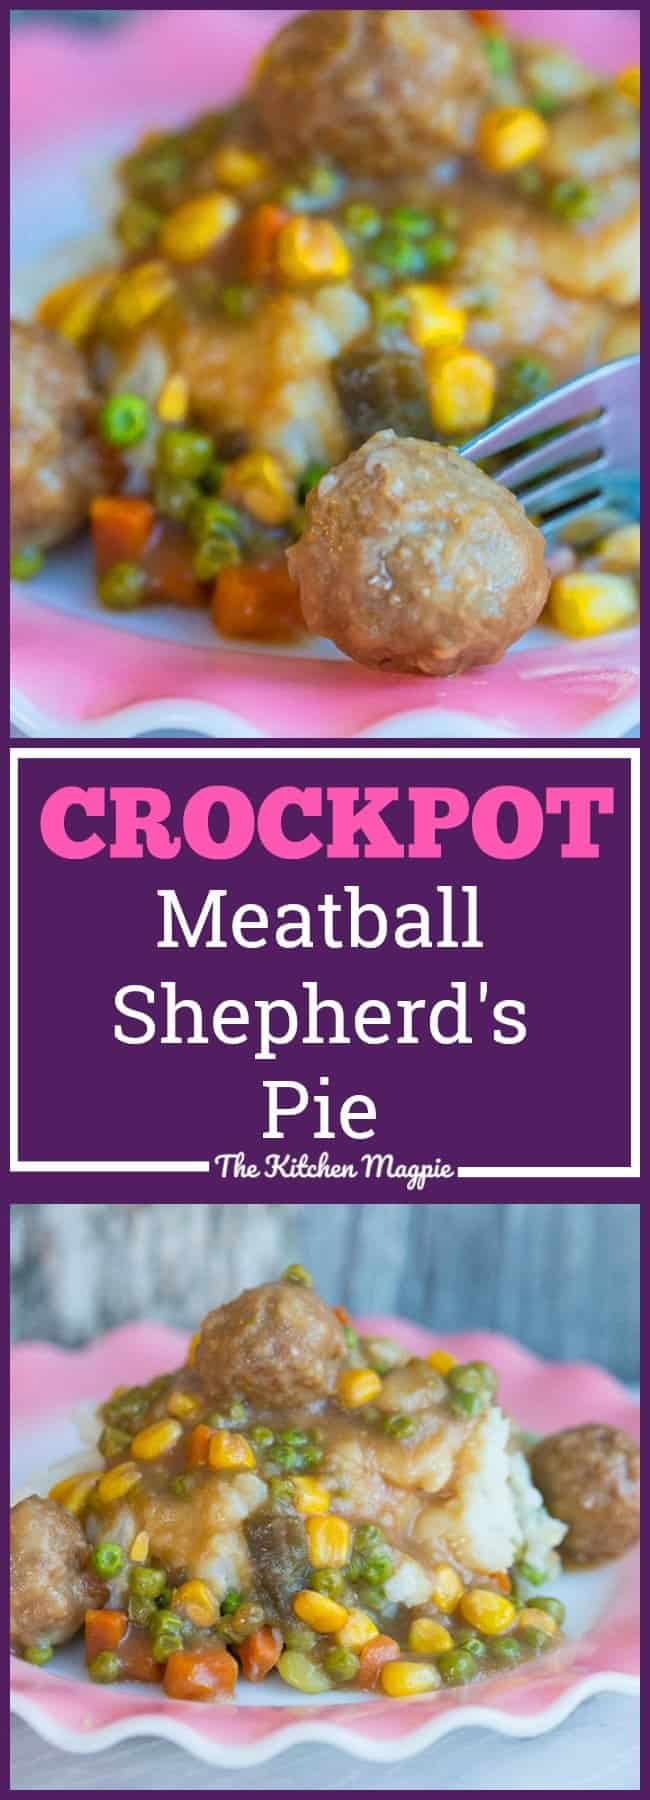 This Crockpot Meatball Shepherd's Pie is sure to become a new family favourite! It cooks all day and you come home to a delicious meal in your slow cooker! Recipe from @kitchenmagpie. #recipe #crockpot #slowcooker #meatballs #shepherdspie #dinner #supper